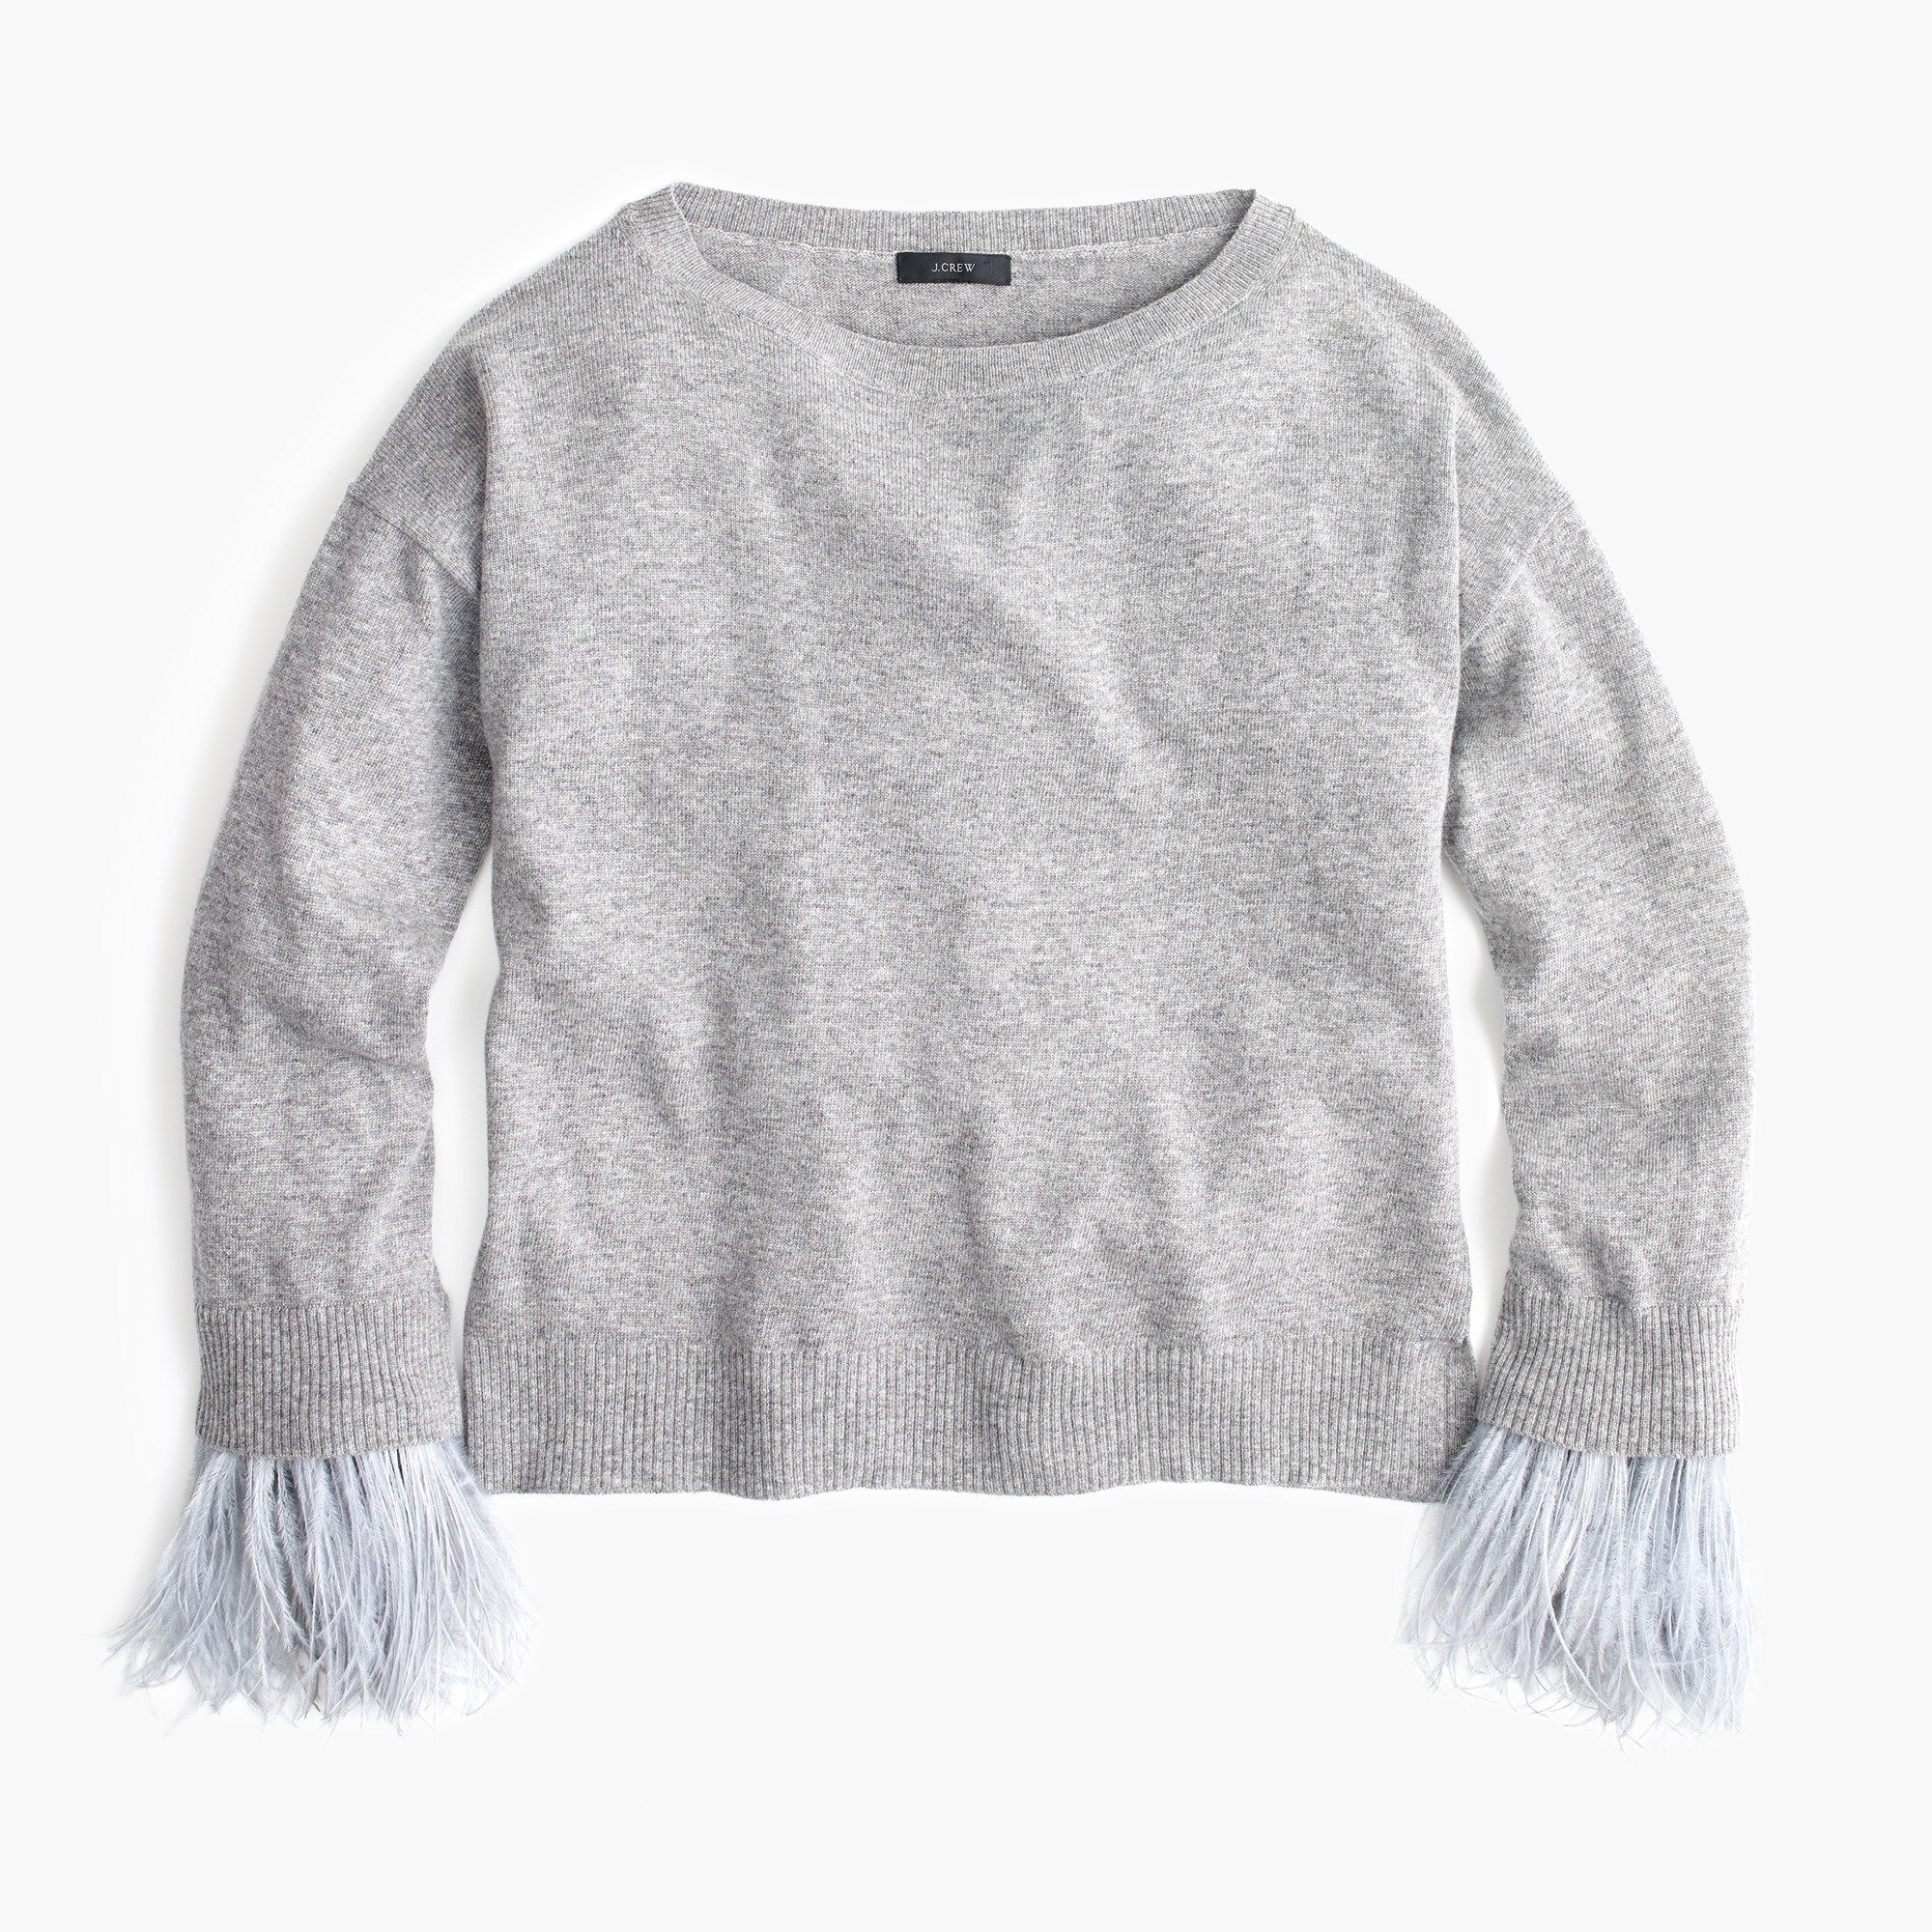 Image 2 for Crewneck sweater with feather sleeves